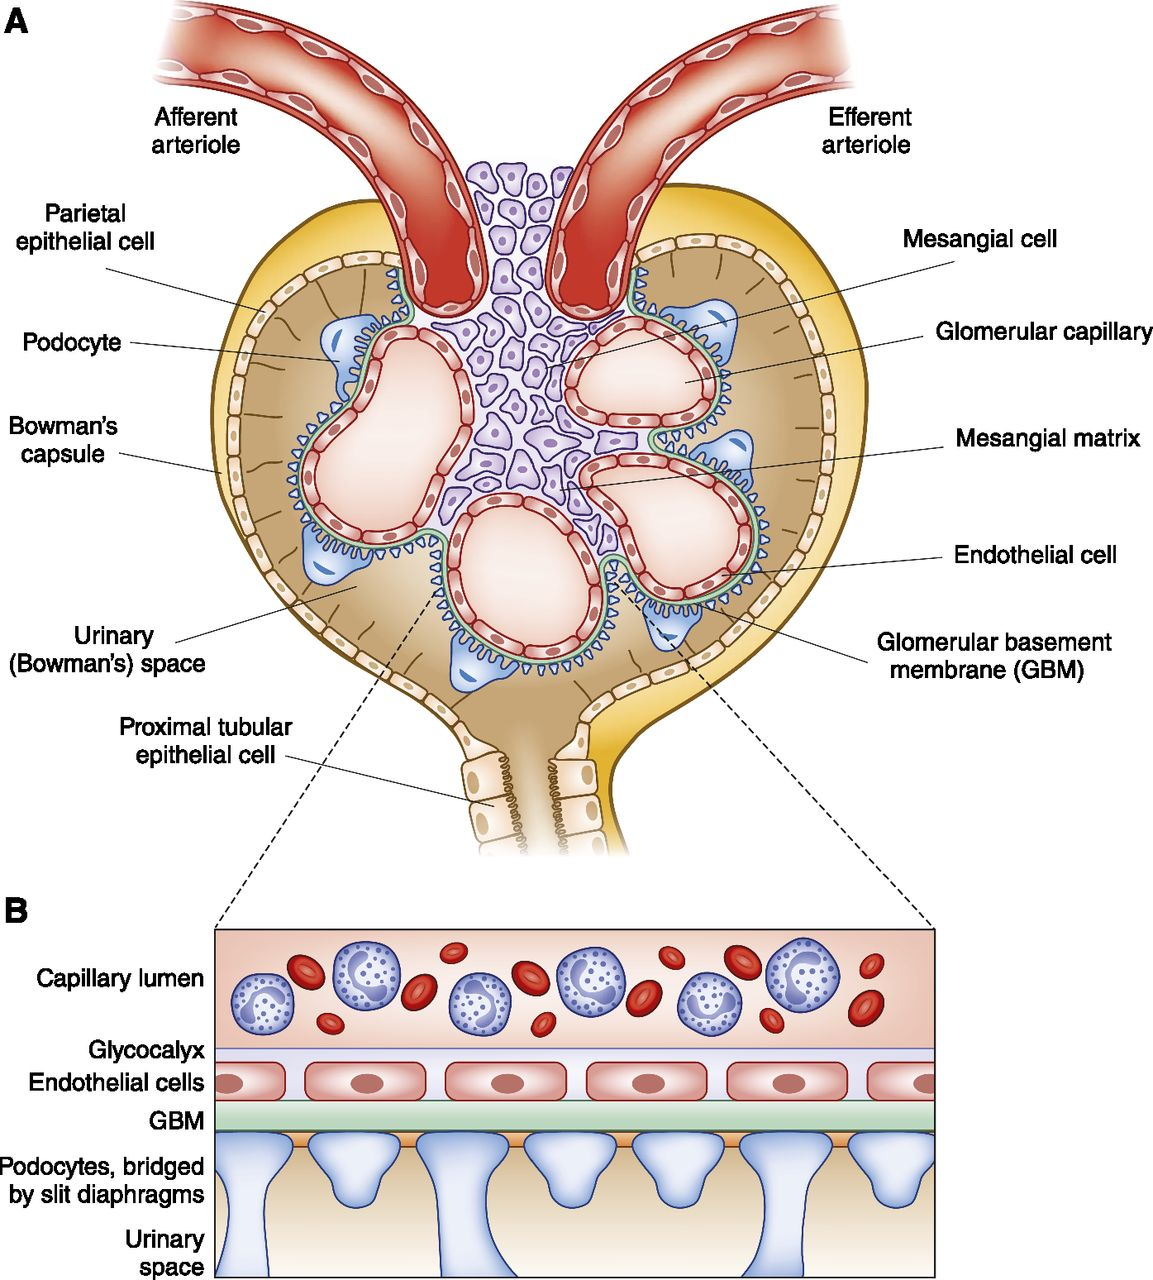 The Players: Cells Involved In Glomerular Disease